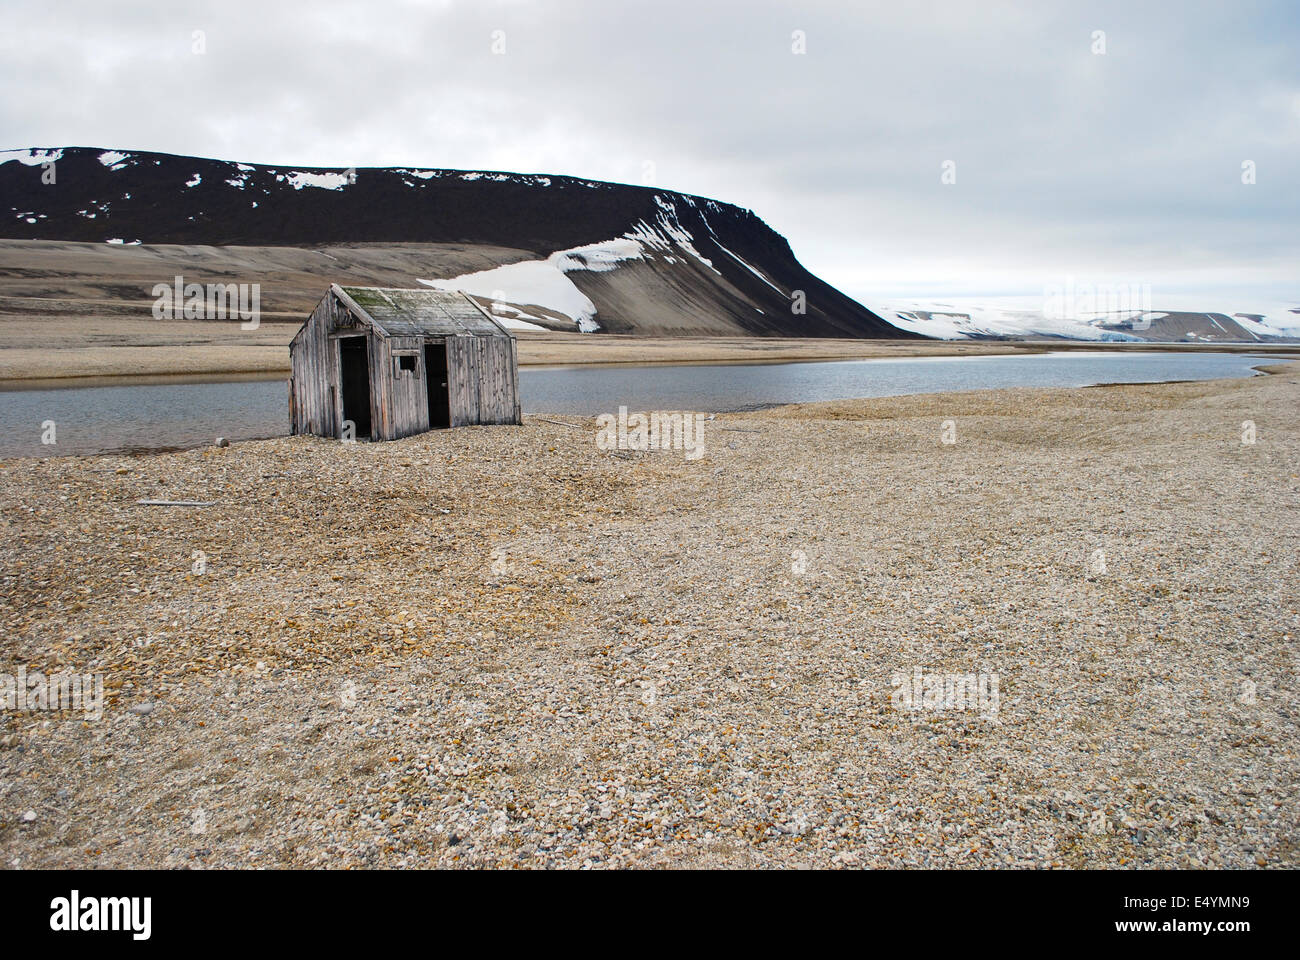 Lonely Hut, Spitsbergen, Norway - Stock Image